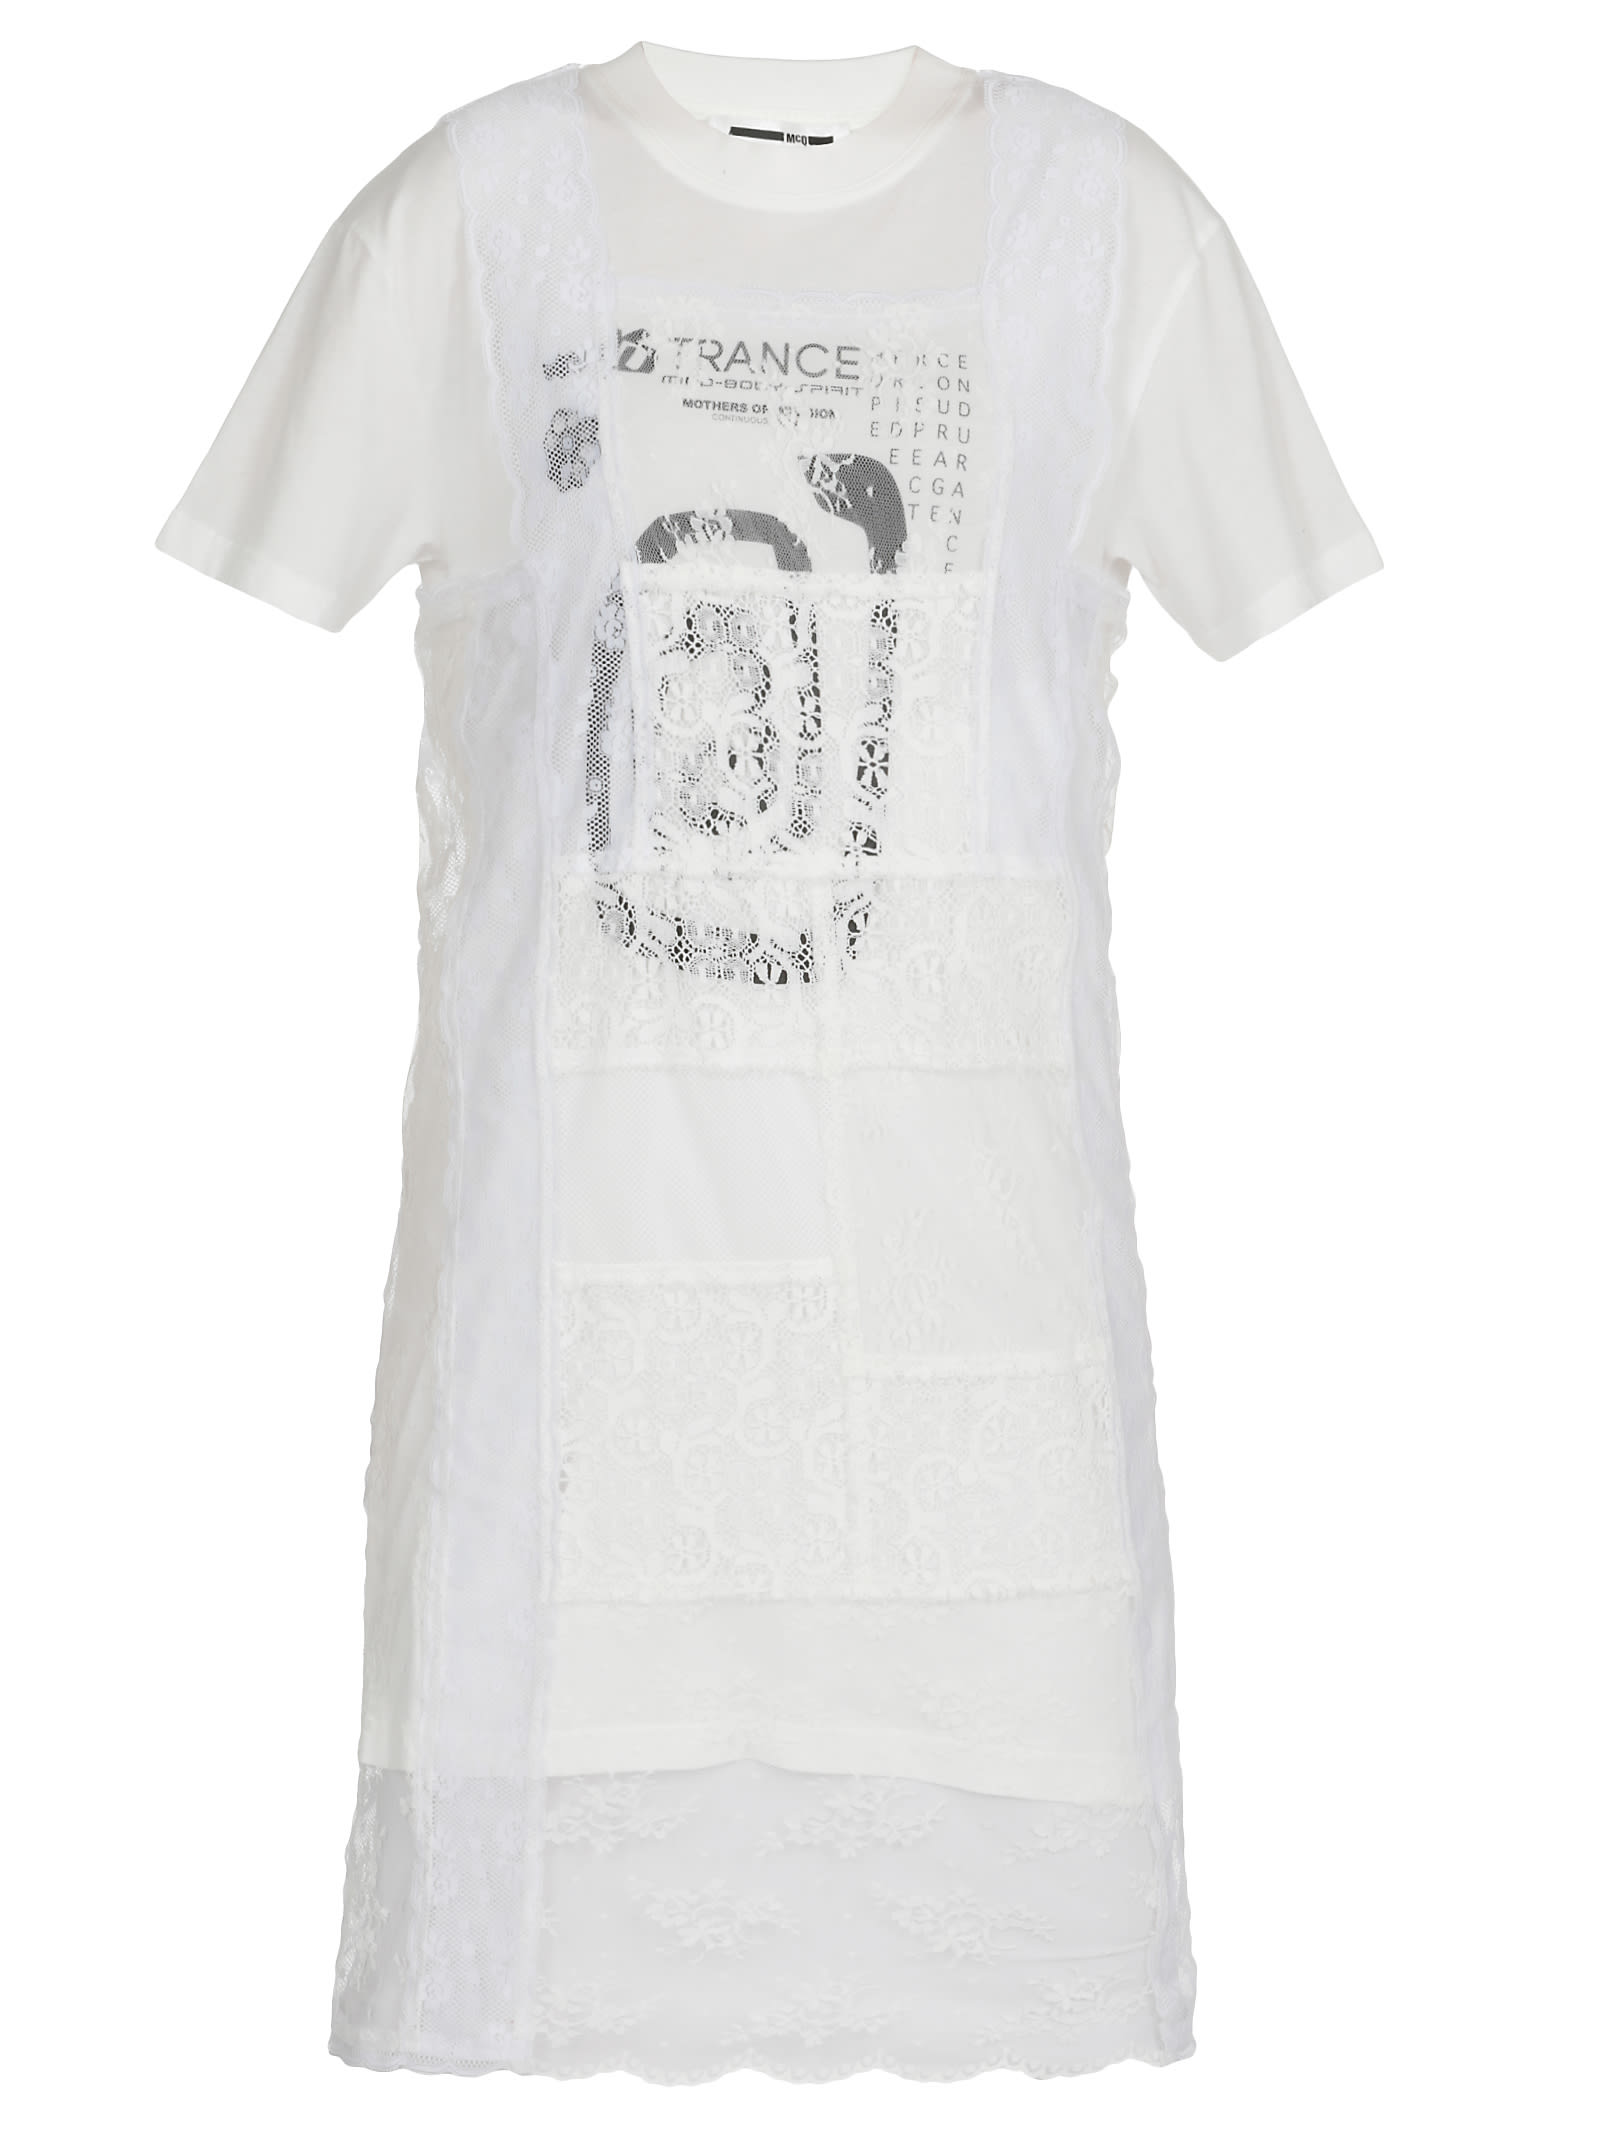 Buy McQ Alexander McQueen Dress With Laces online, shop McQ Alexander McQueen with free shipping